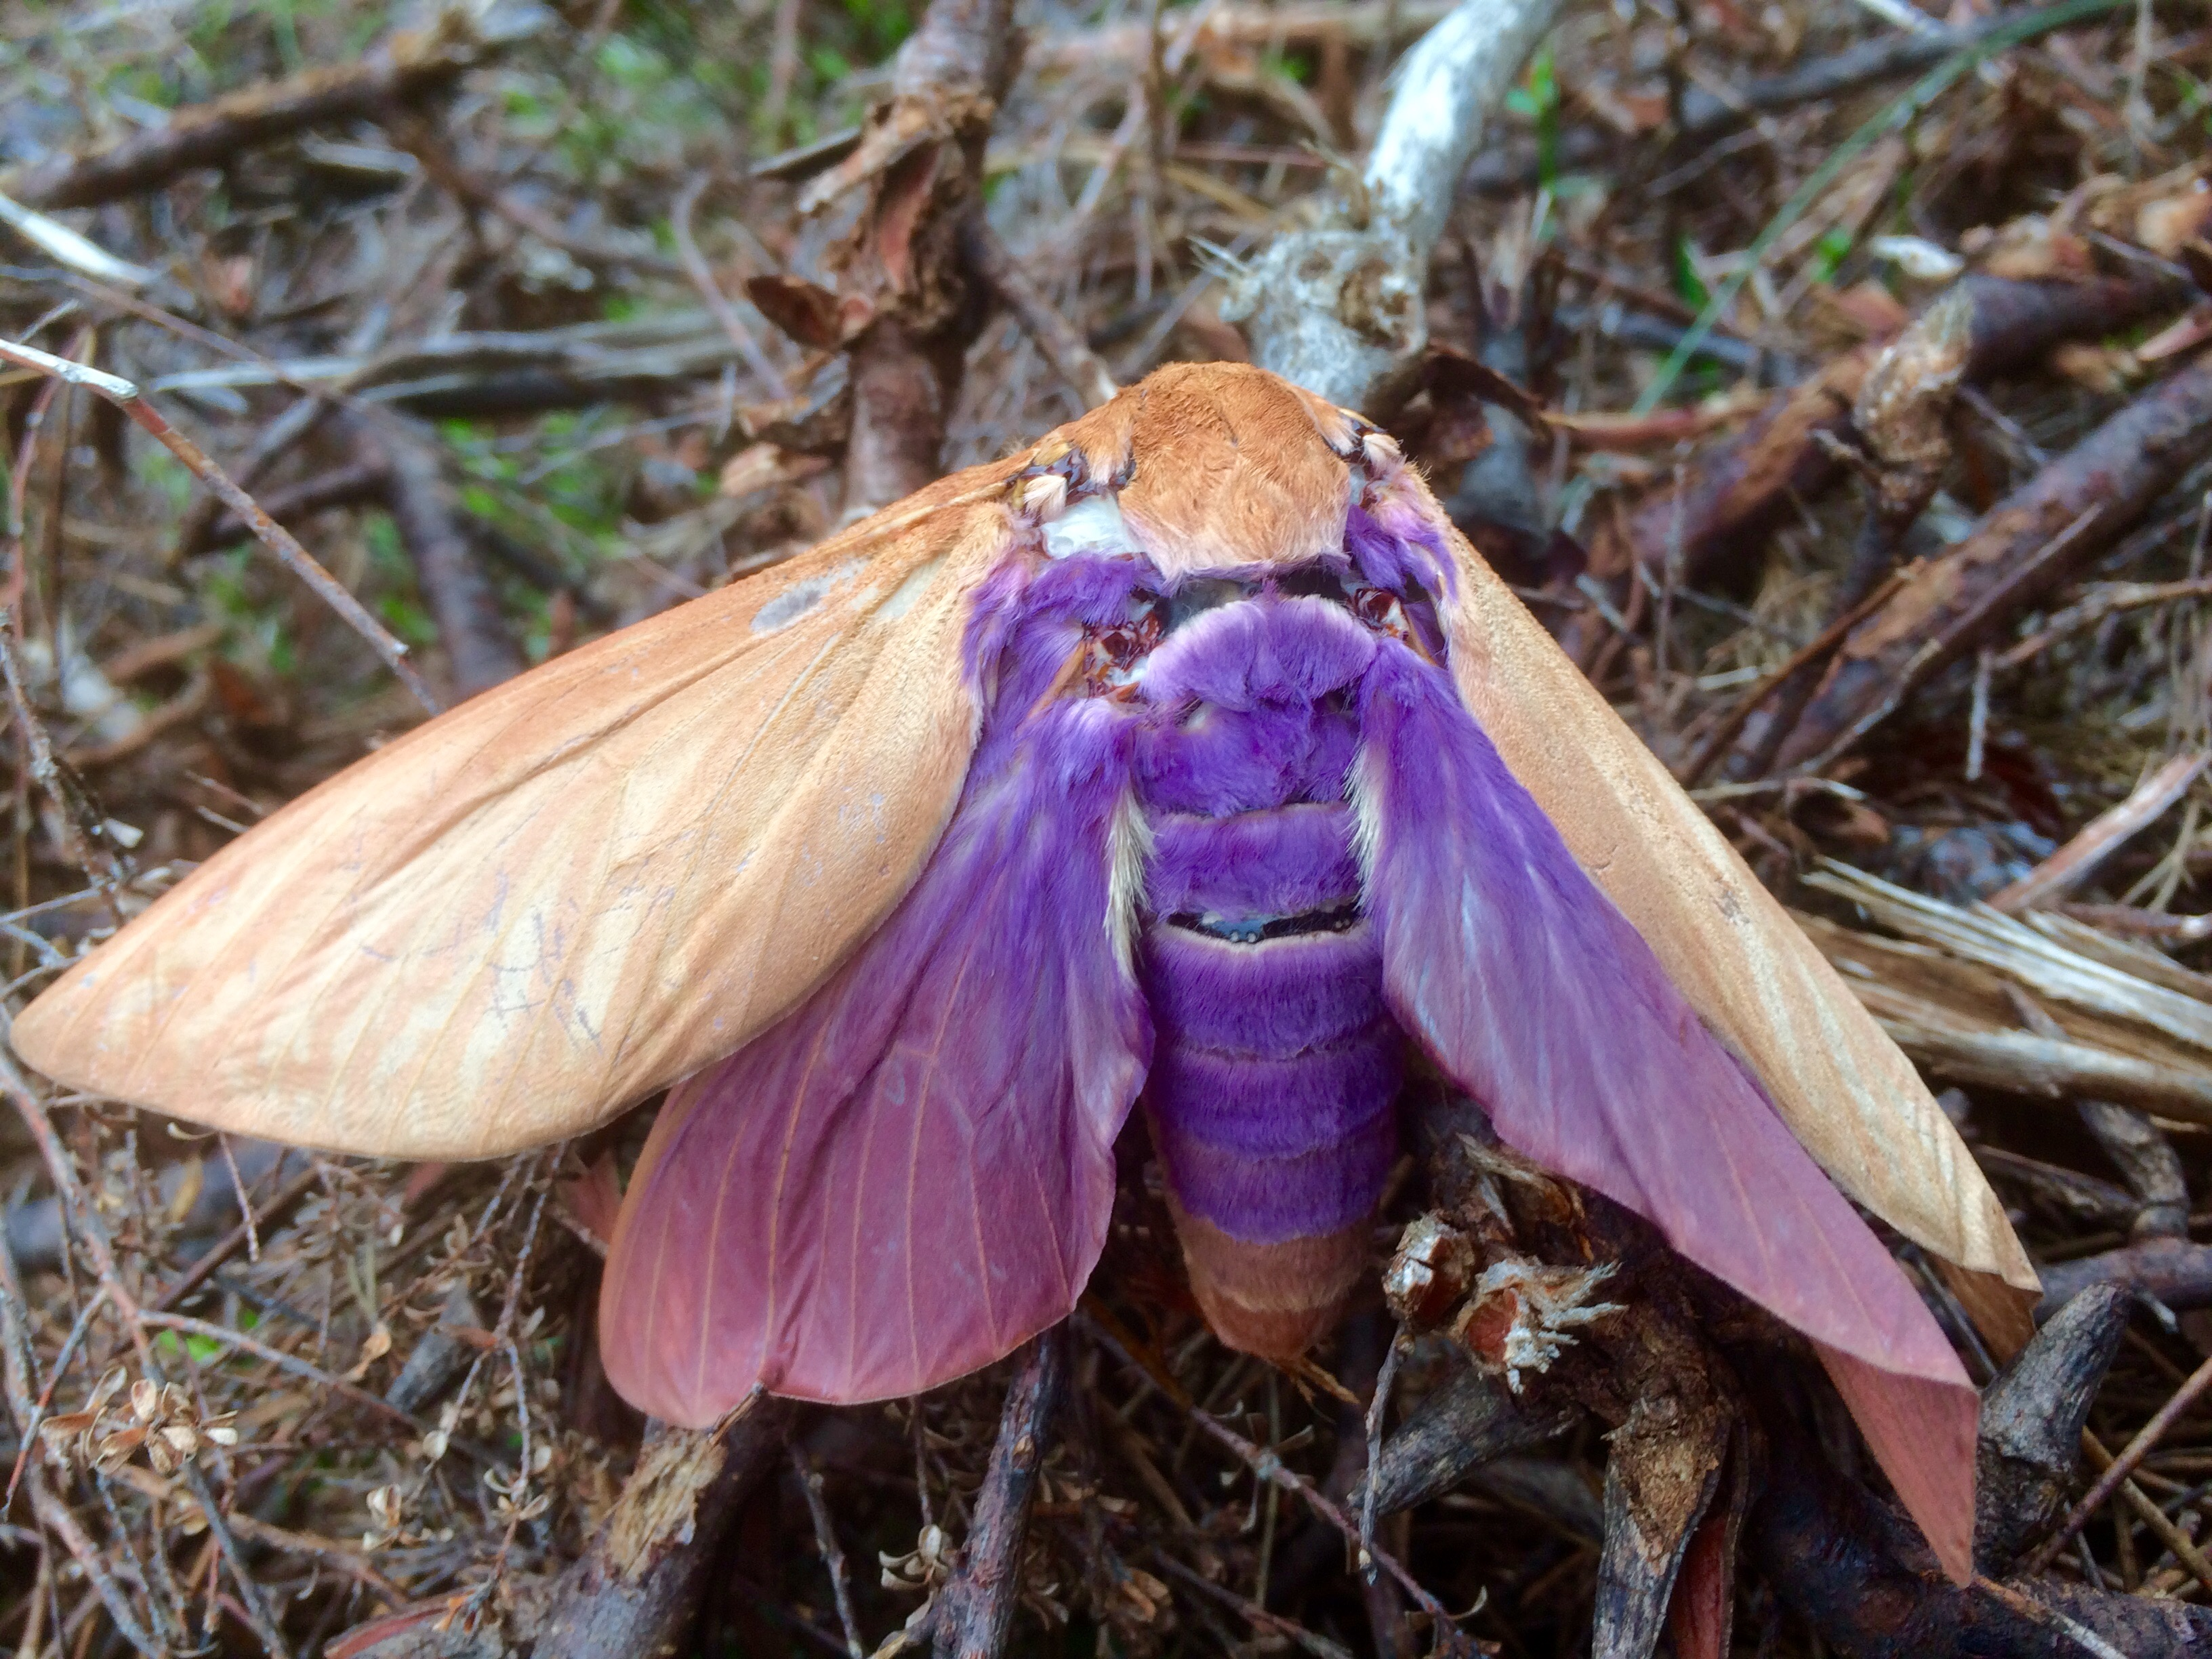 Moth image by David Middlebrook in the Blue Mountains NSW